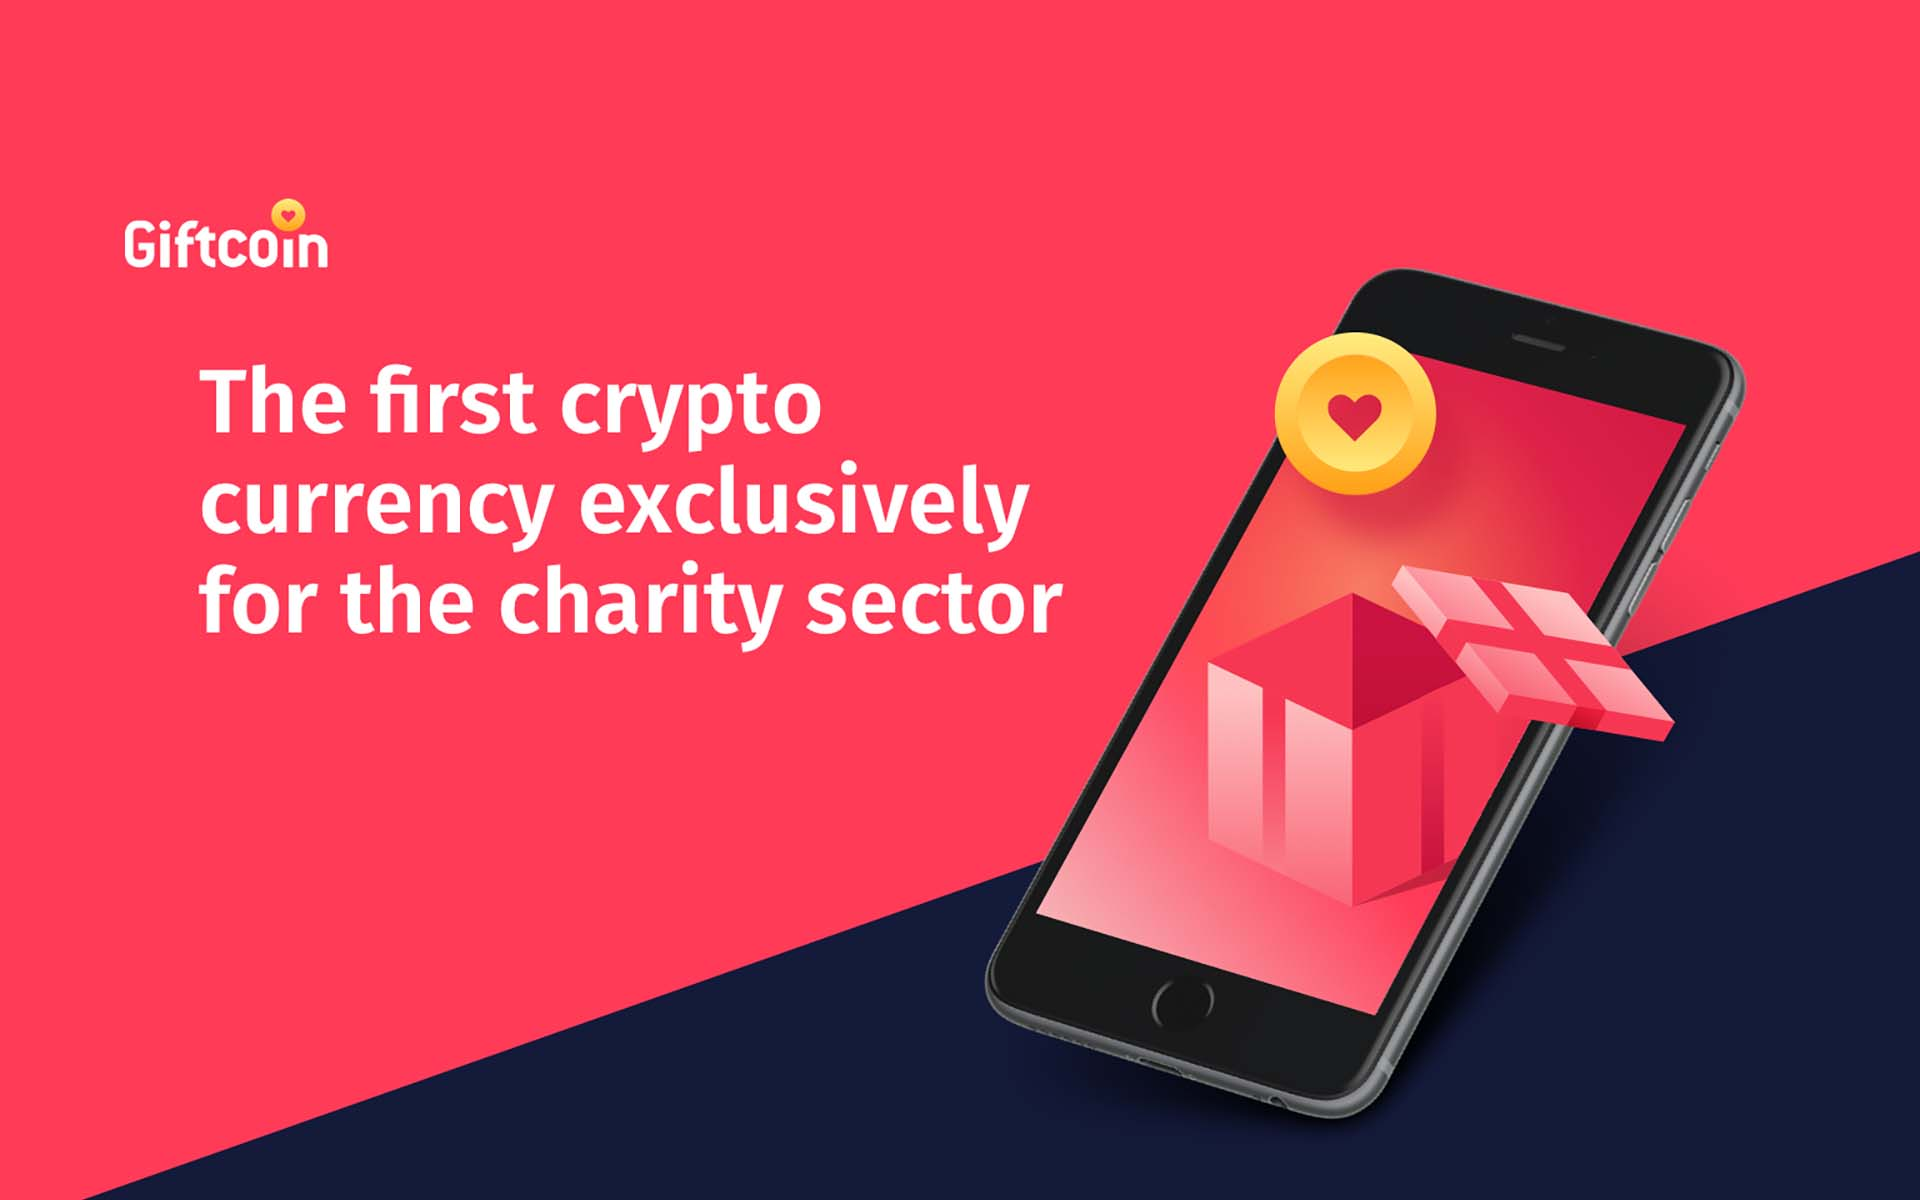 Giftcoin Brings Blockchain Technology to Charities for Greater Transparency